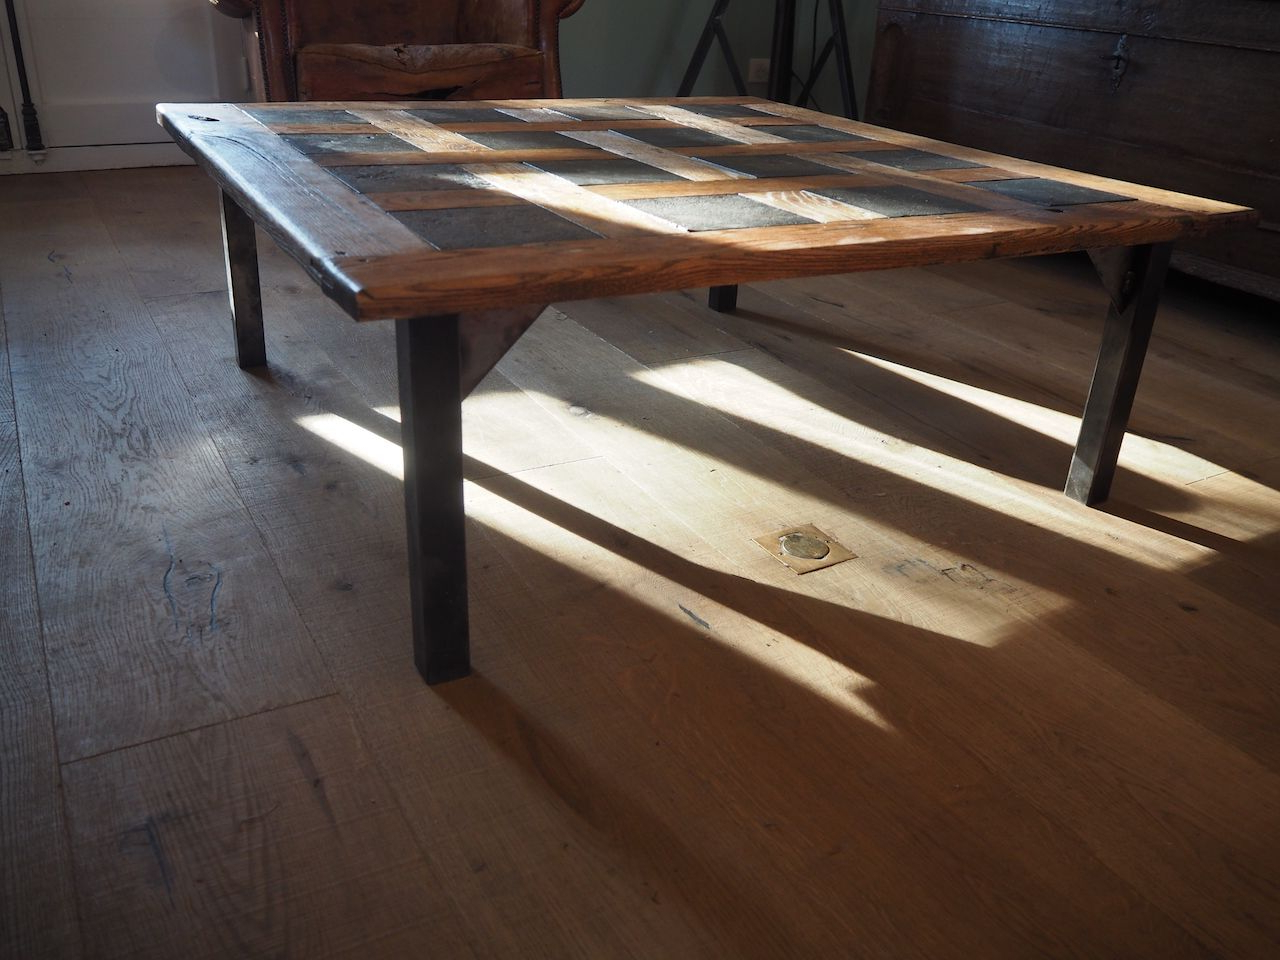 Widely Used Parquet Coffee Tables Regarding Mid Century Parquet Coffee Table, 1950S For Sale At Pamono (View 20 of 20)